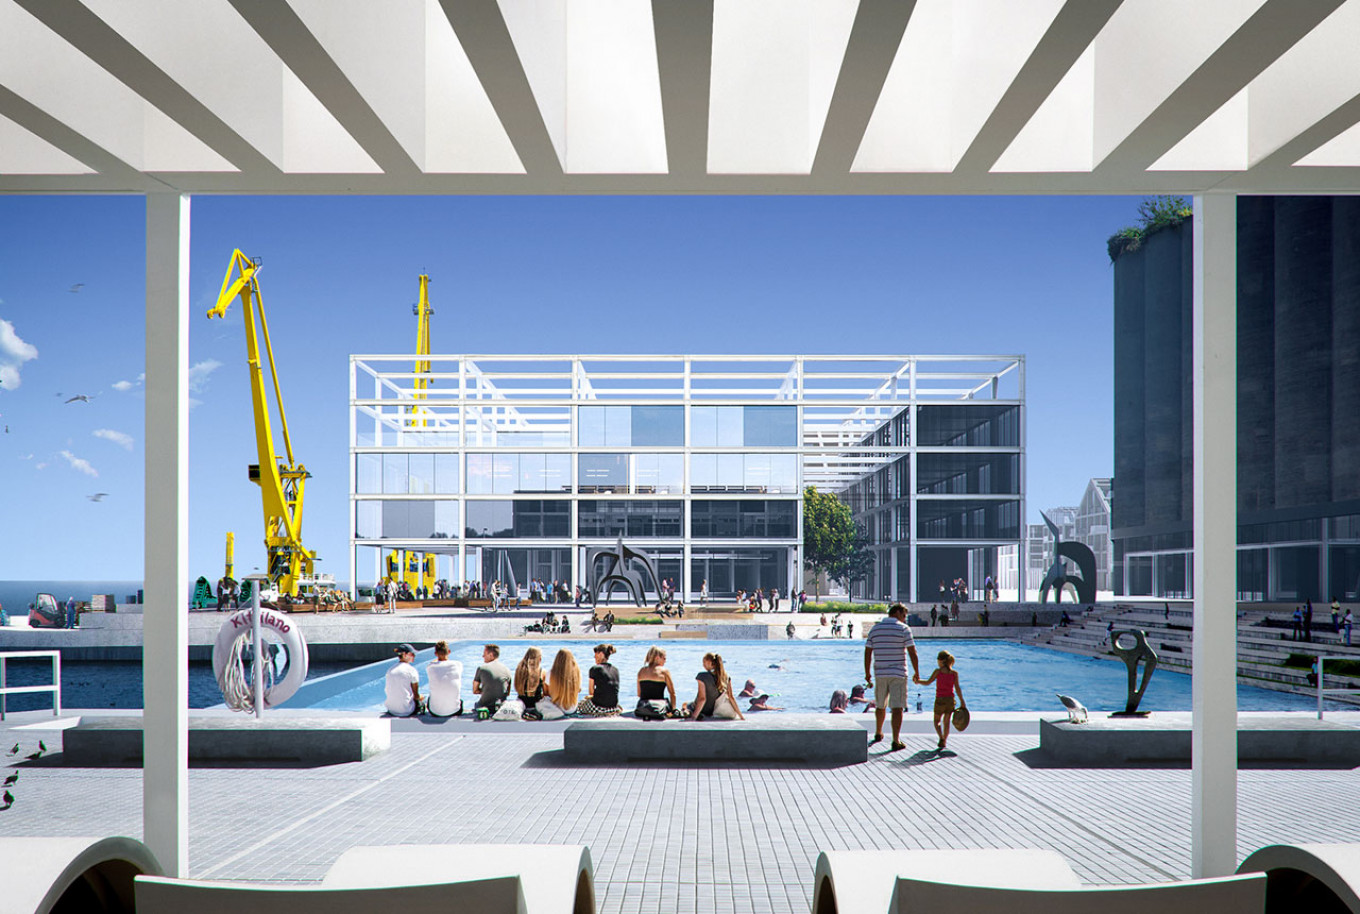 Leto's port elevator project re-imagined the area into a bustling urban center.  Russian Biennale of Young Architects